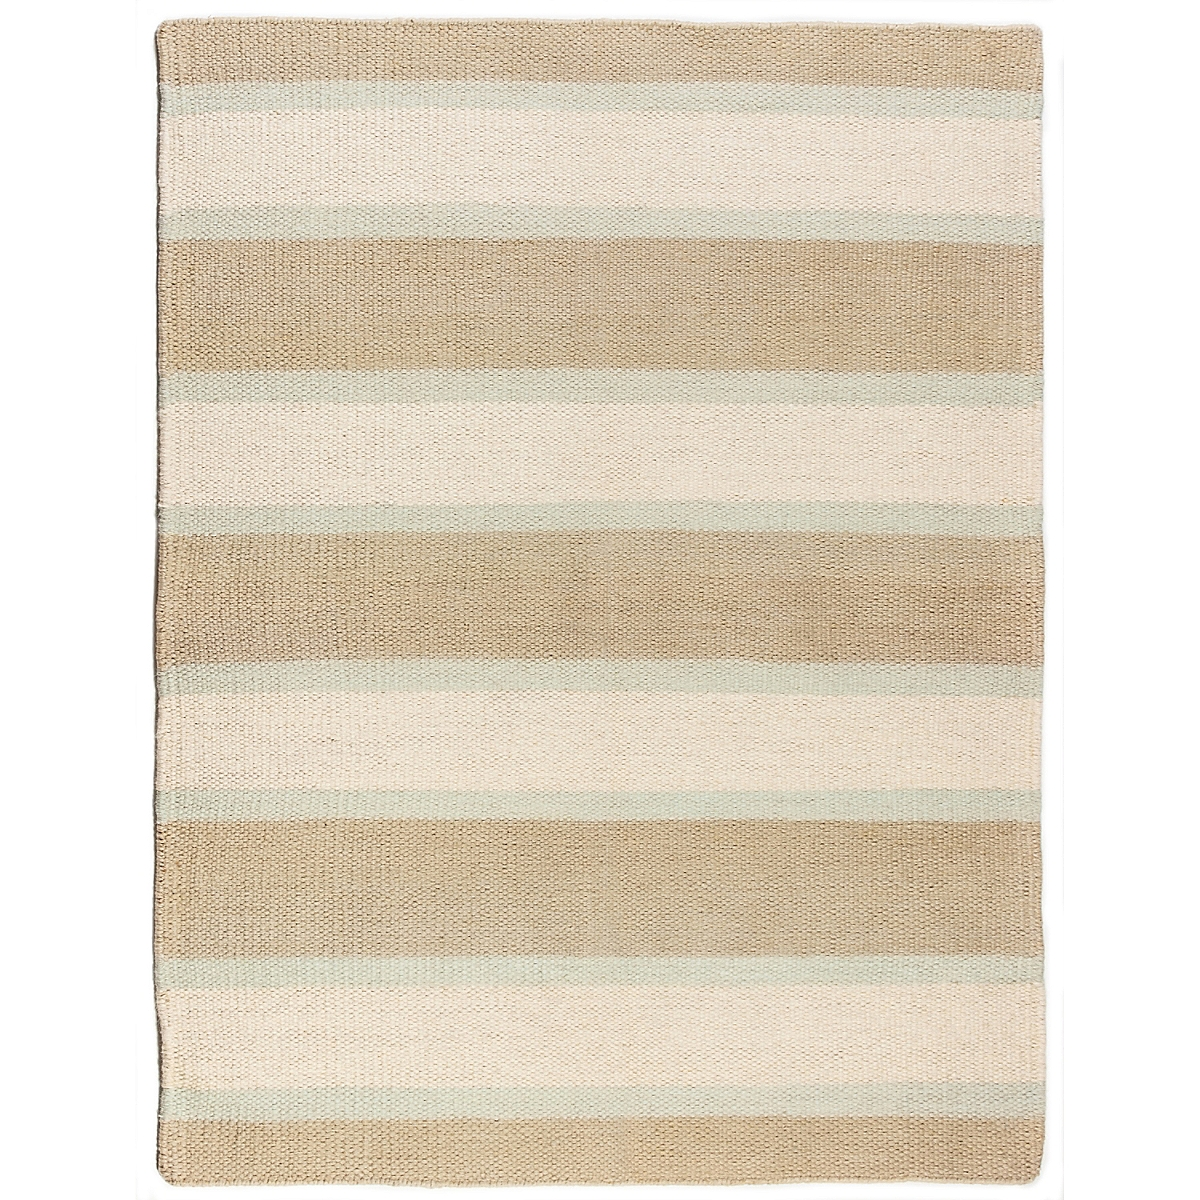 Kennebunk Pier Wool Berber Striped Rug